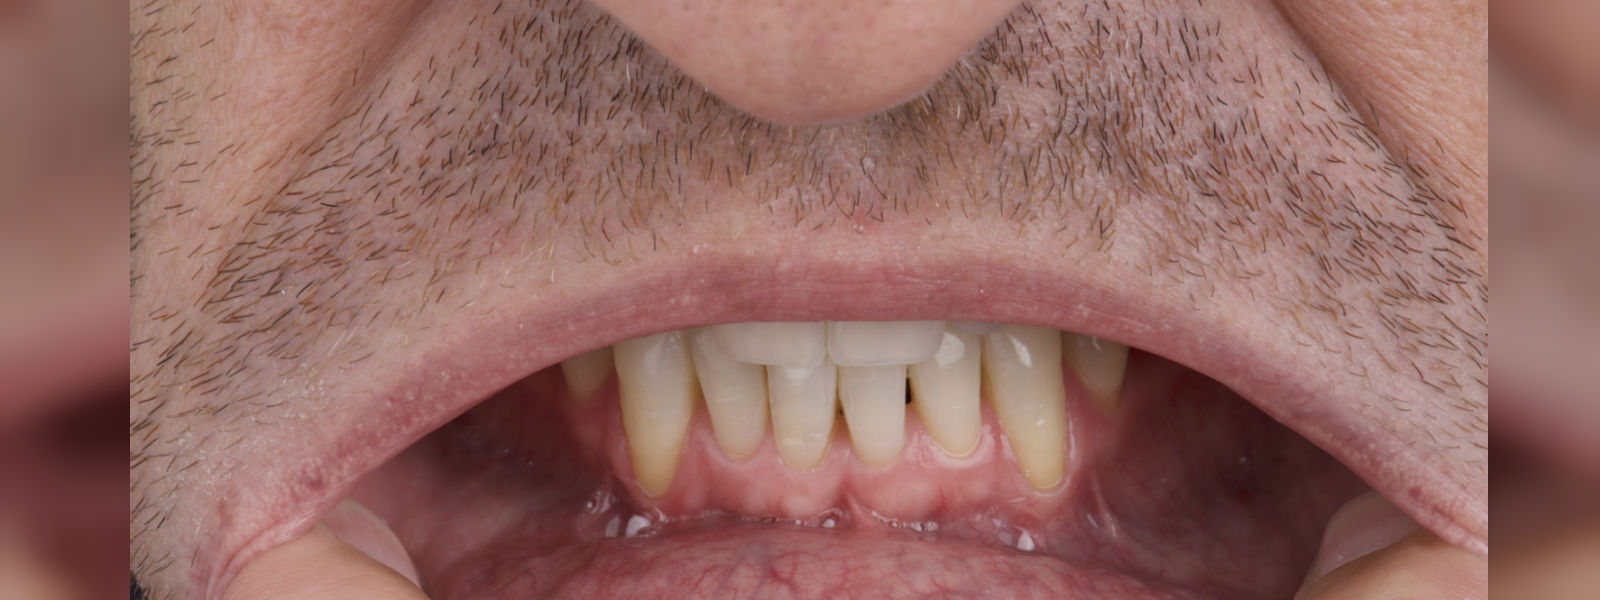 Spike in oral cancer patients in the country